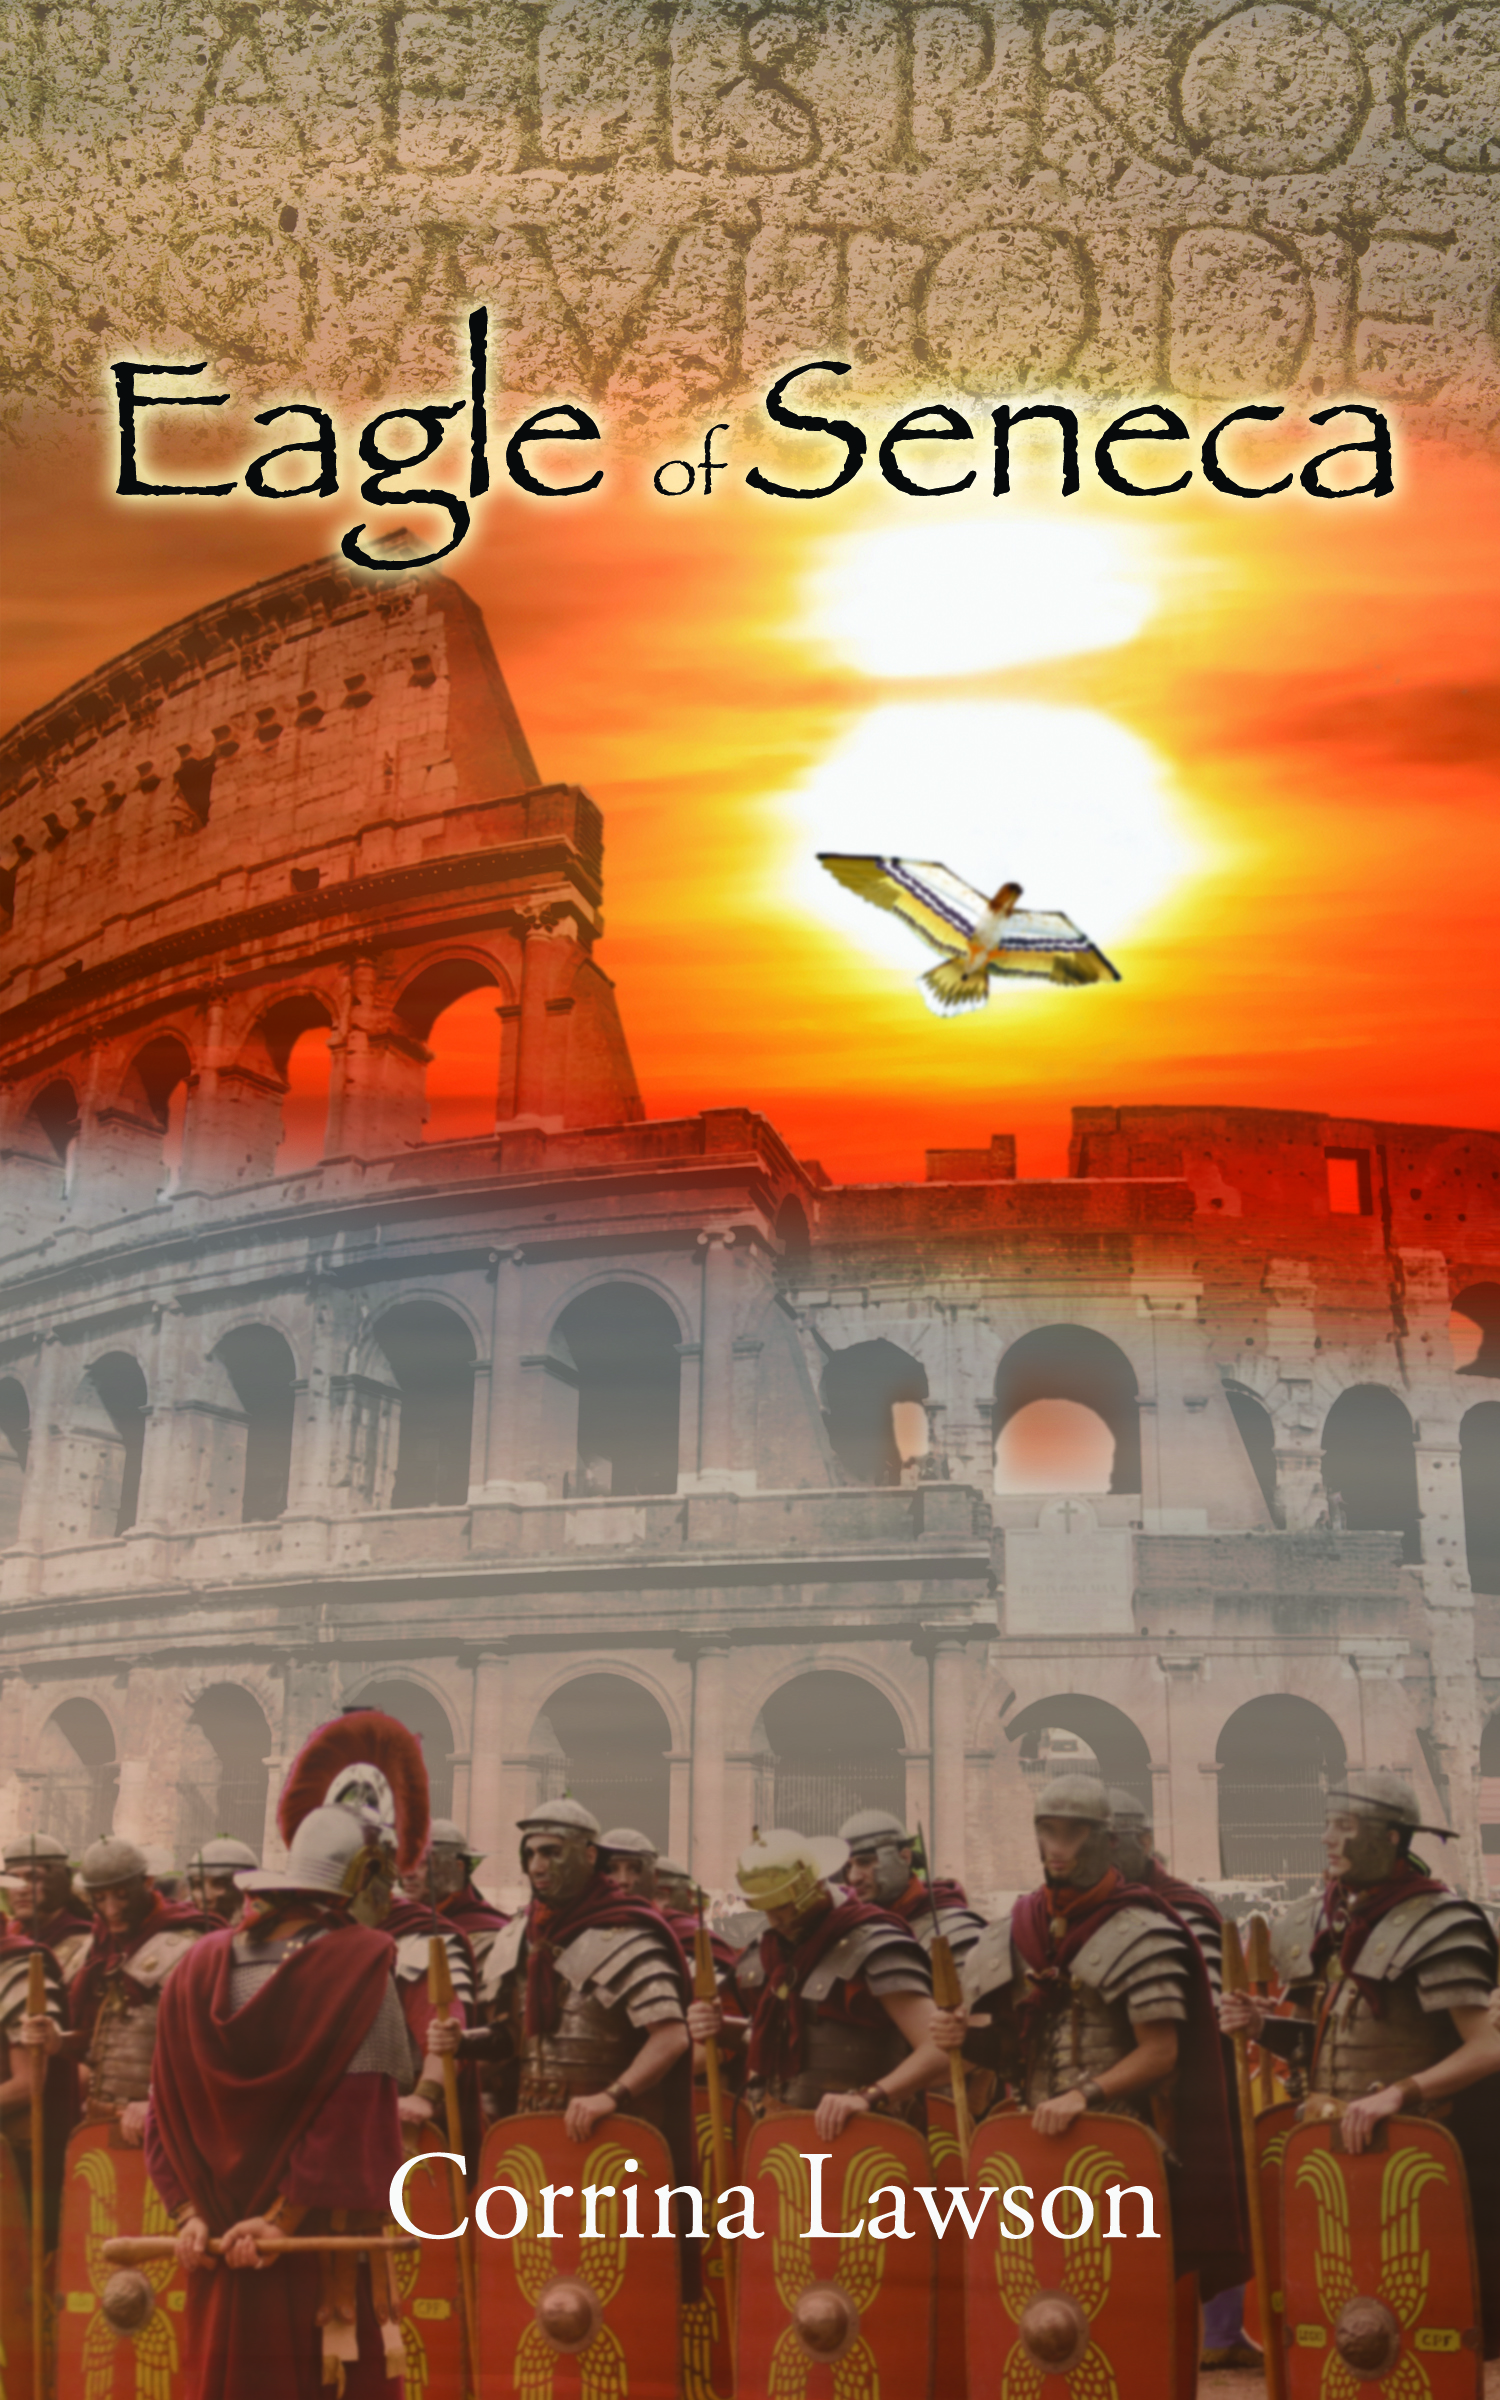 Cover to Eagle of Seneca!